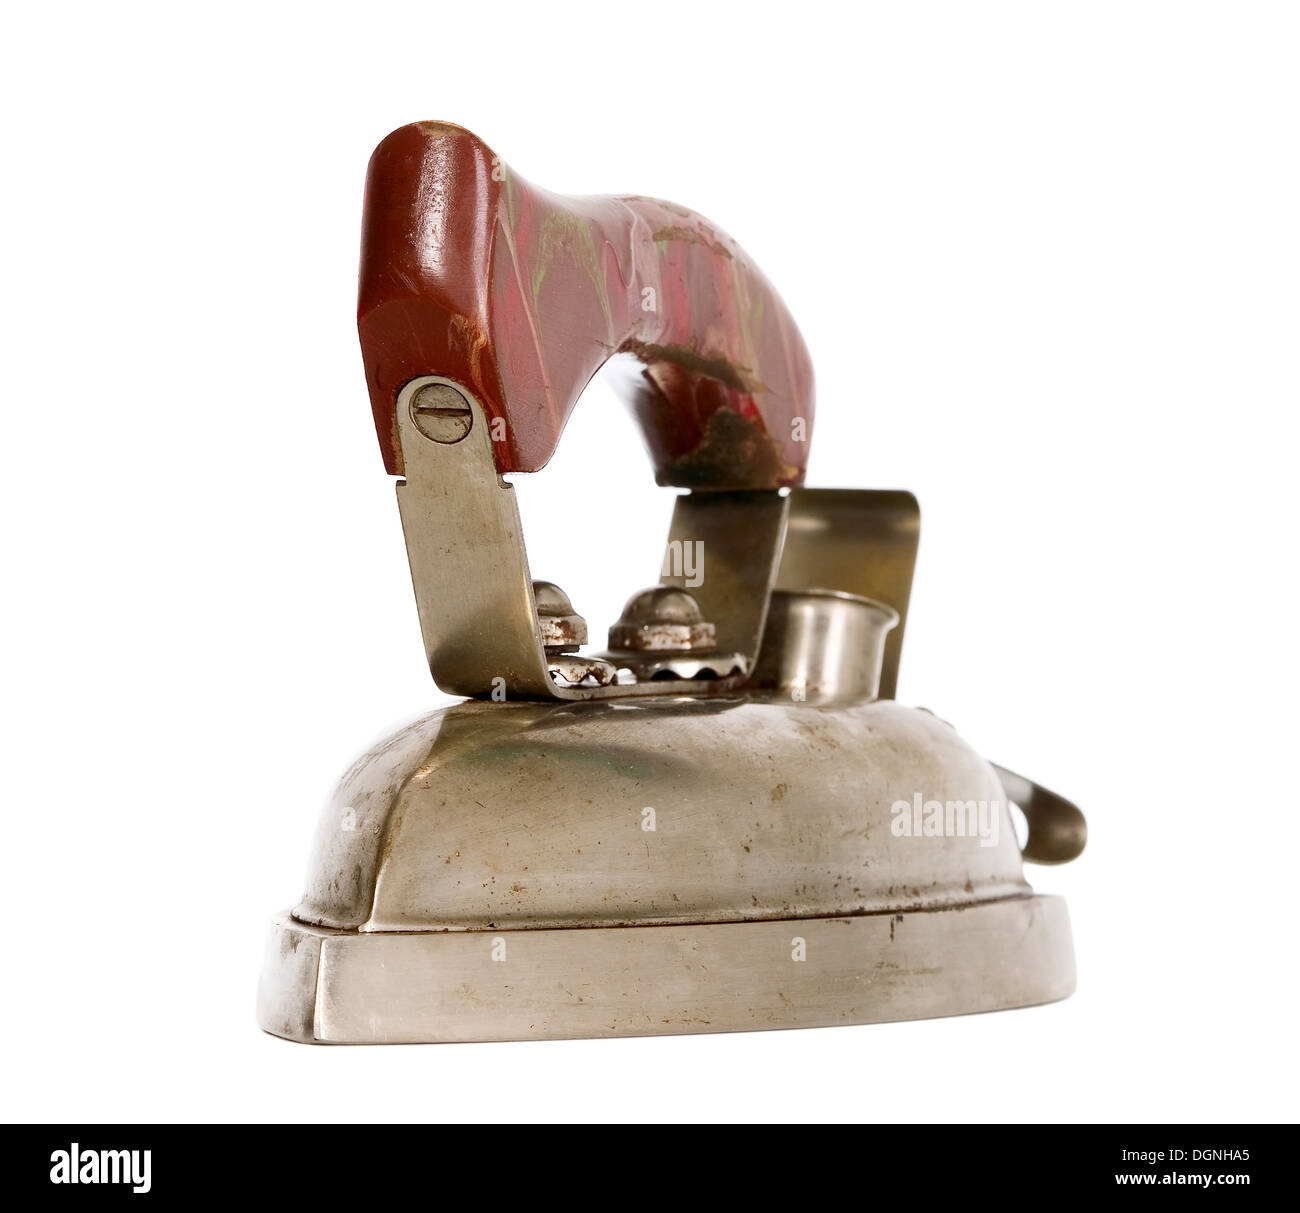 Old vintage iron with brown wooden handle - Stock Image